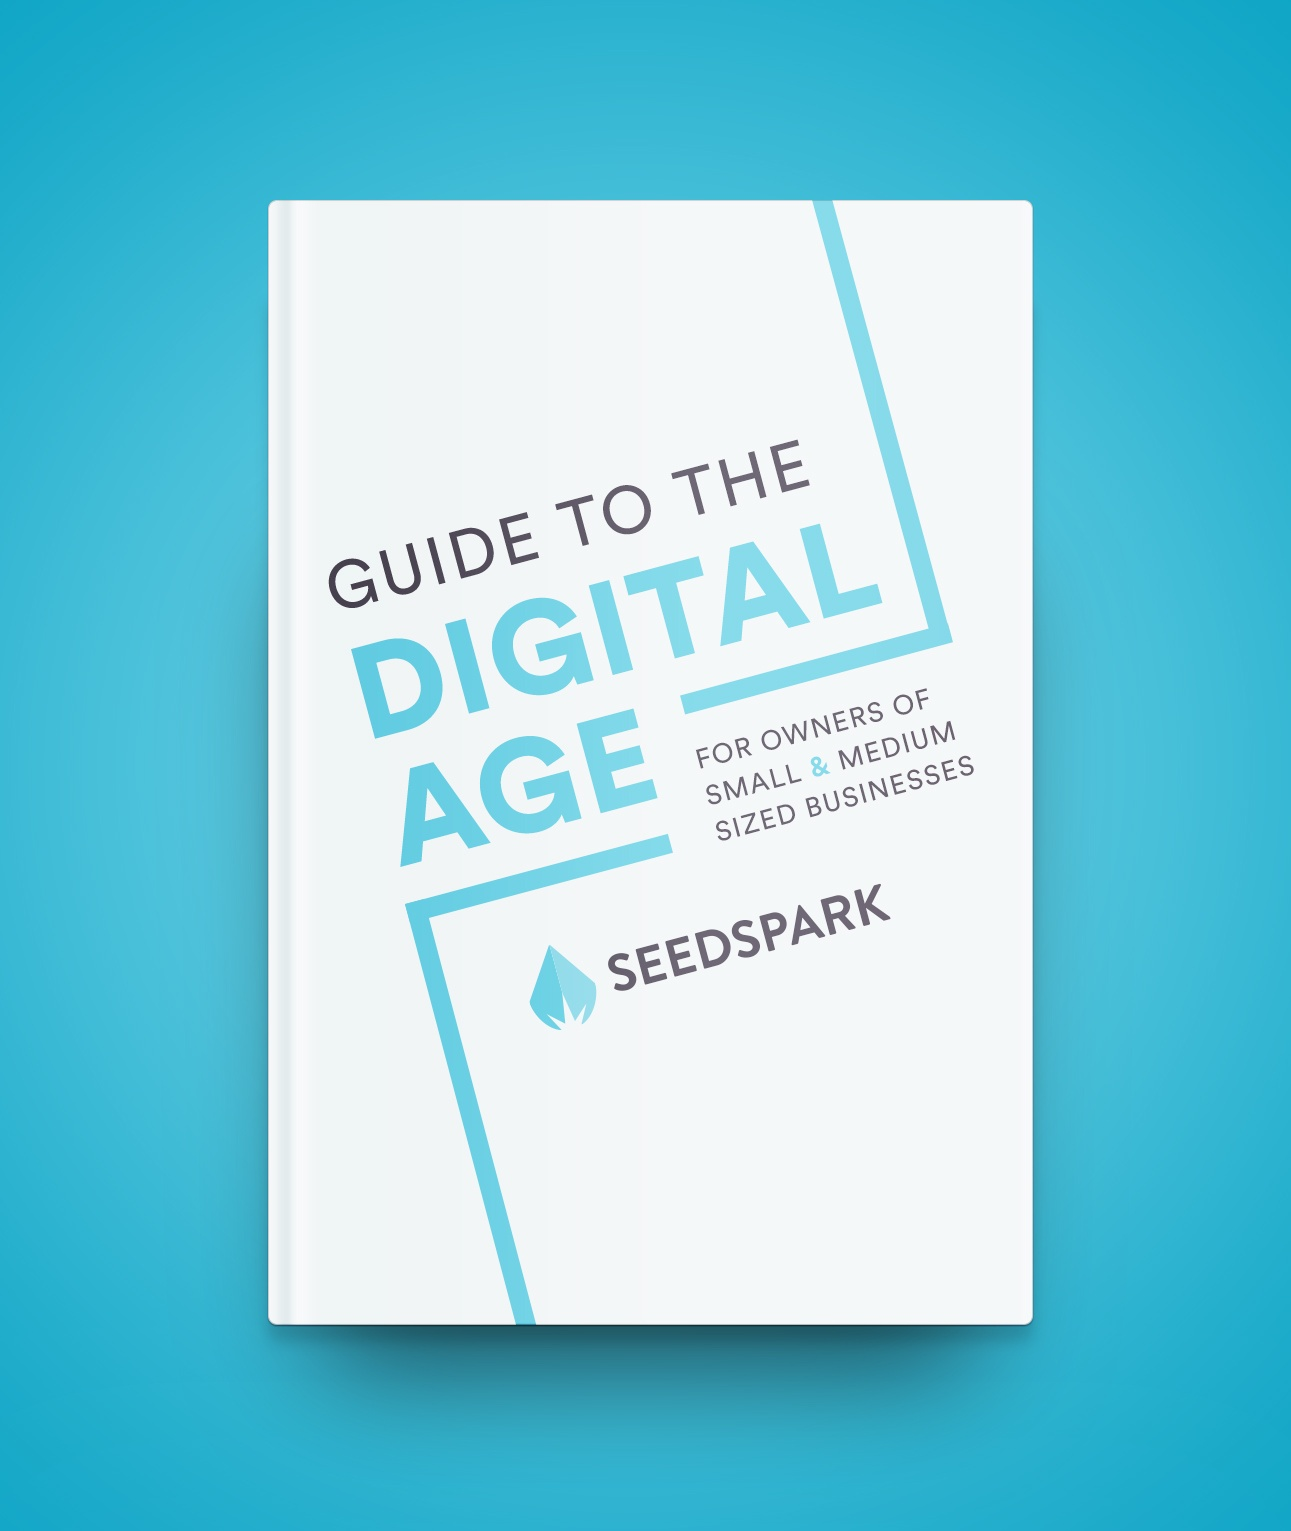 SeedSpark-book-mockup.jpg